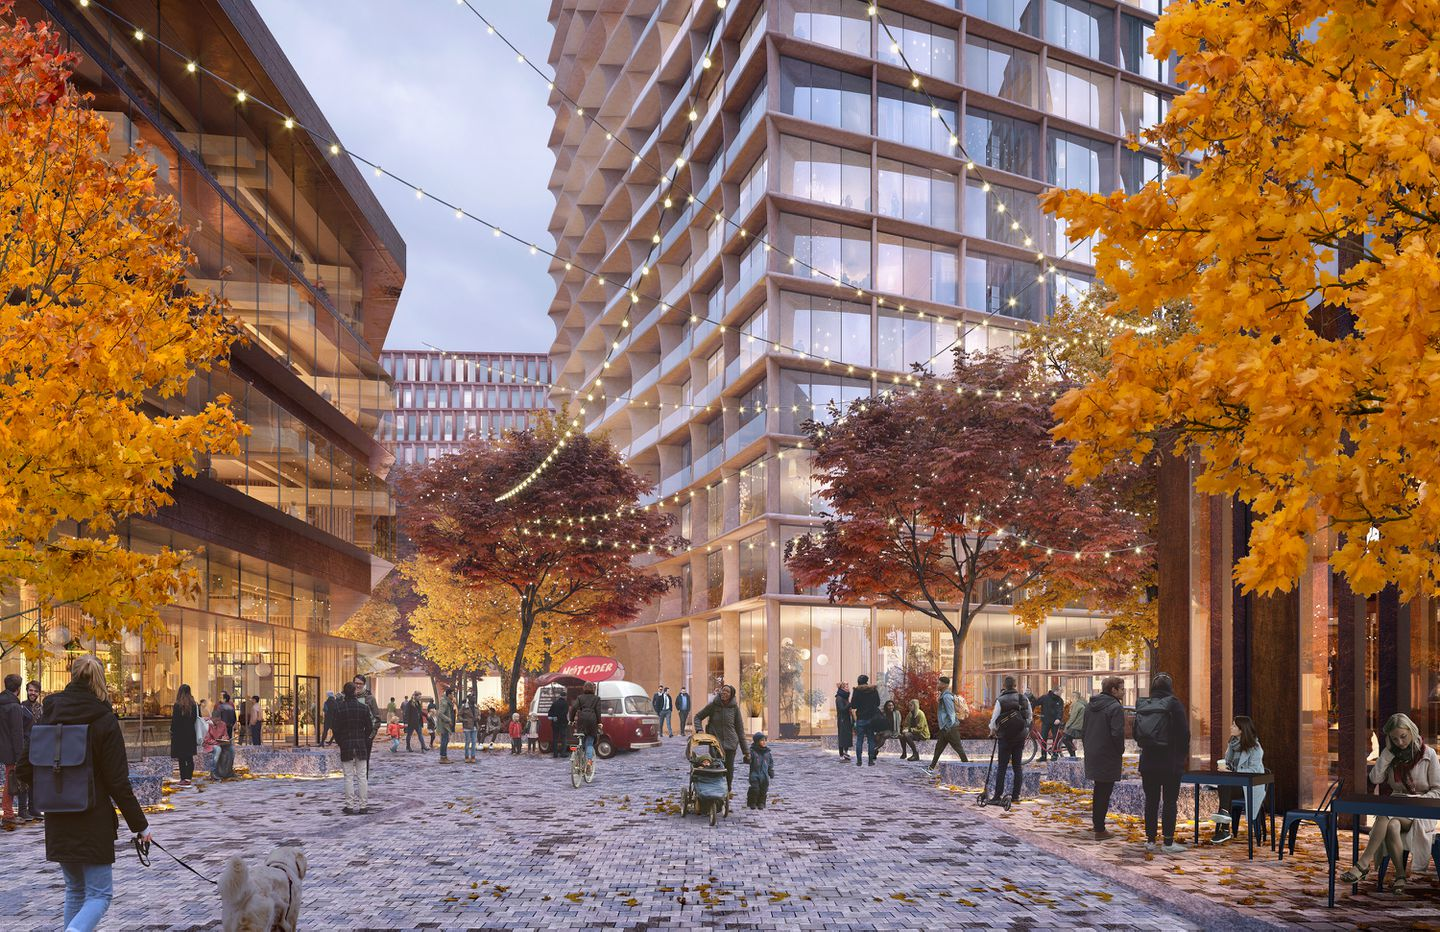 Rendering of innovation campus plaza in the fall at Harvard